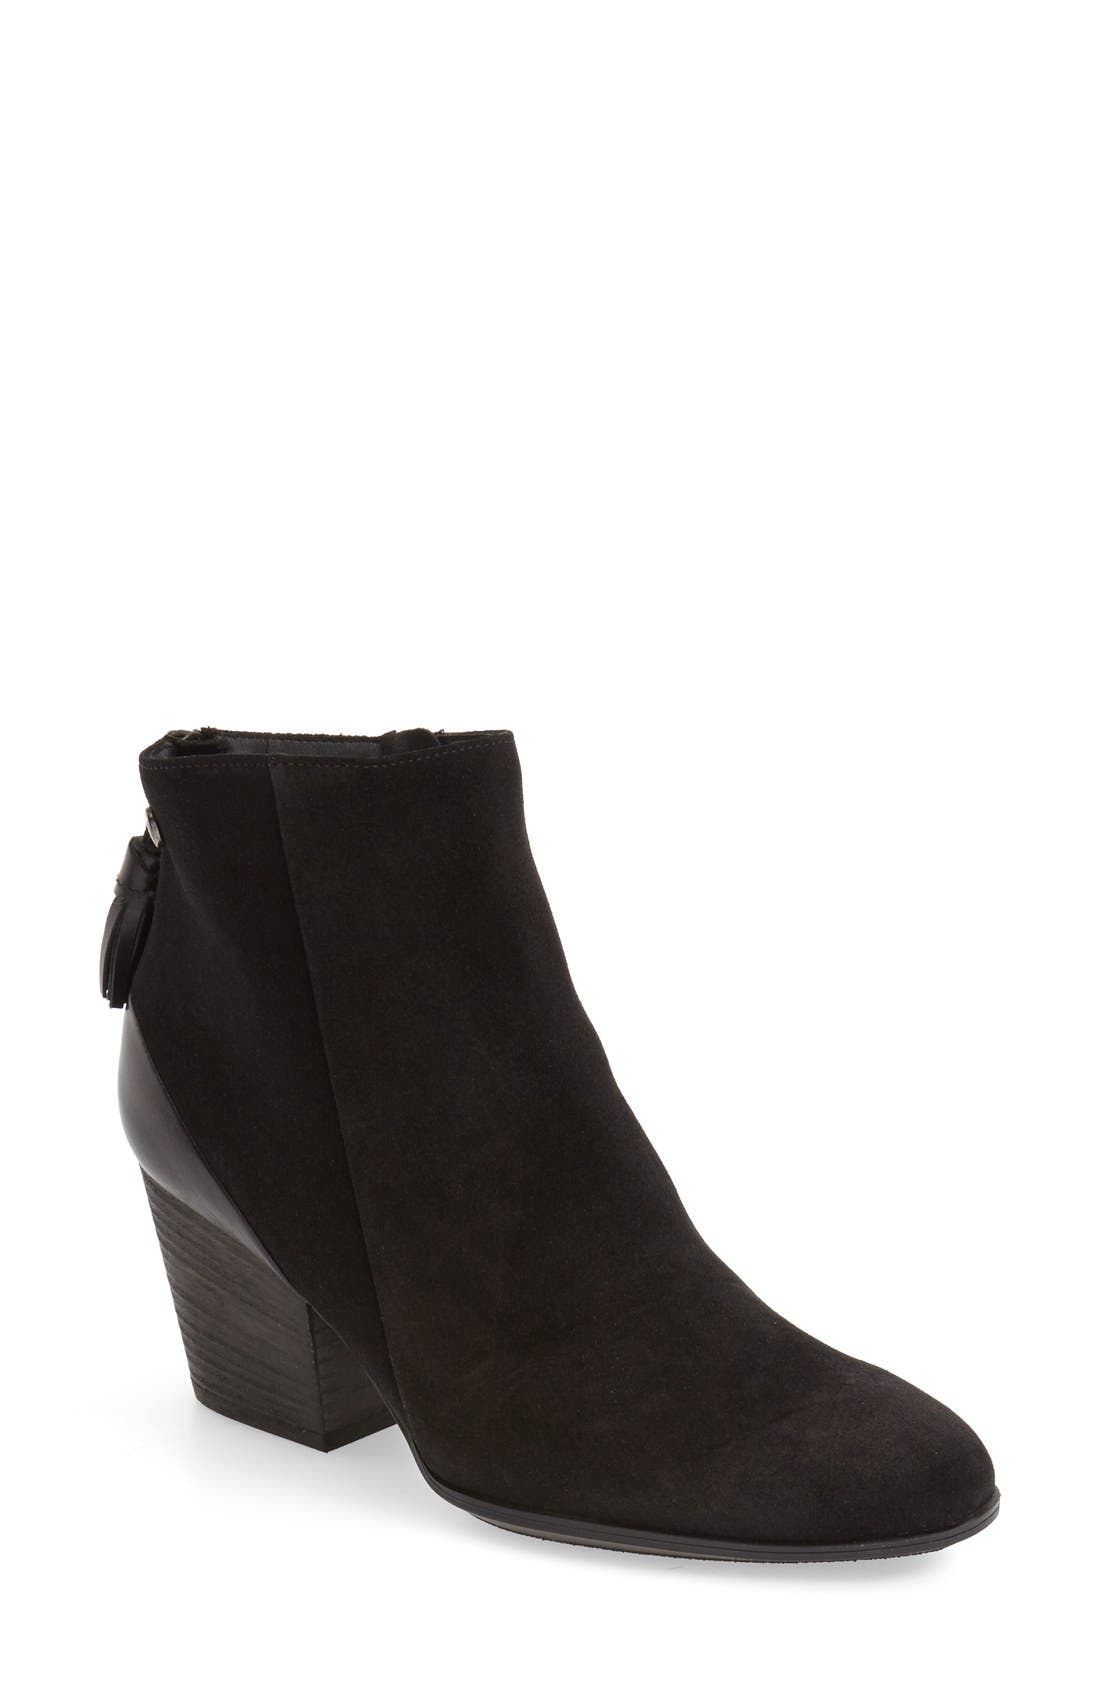 'Jada' Water Resistant Bootie,                             Main thumbnail 1, color,                             003